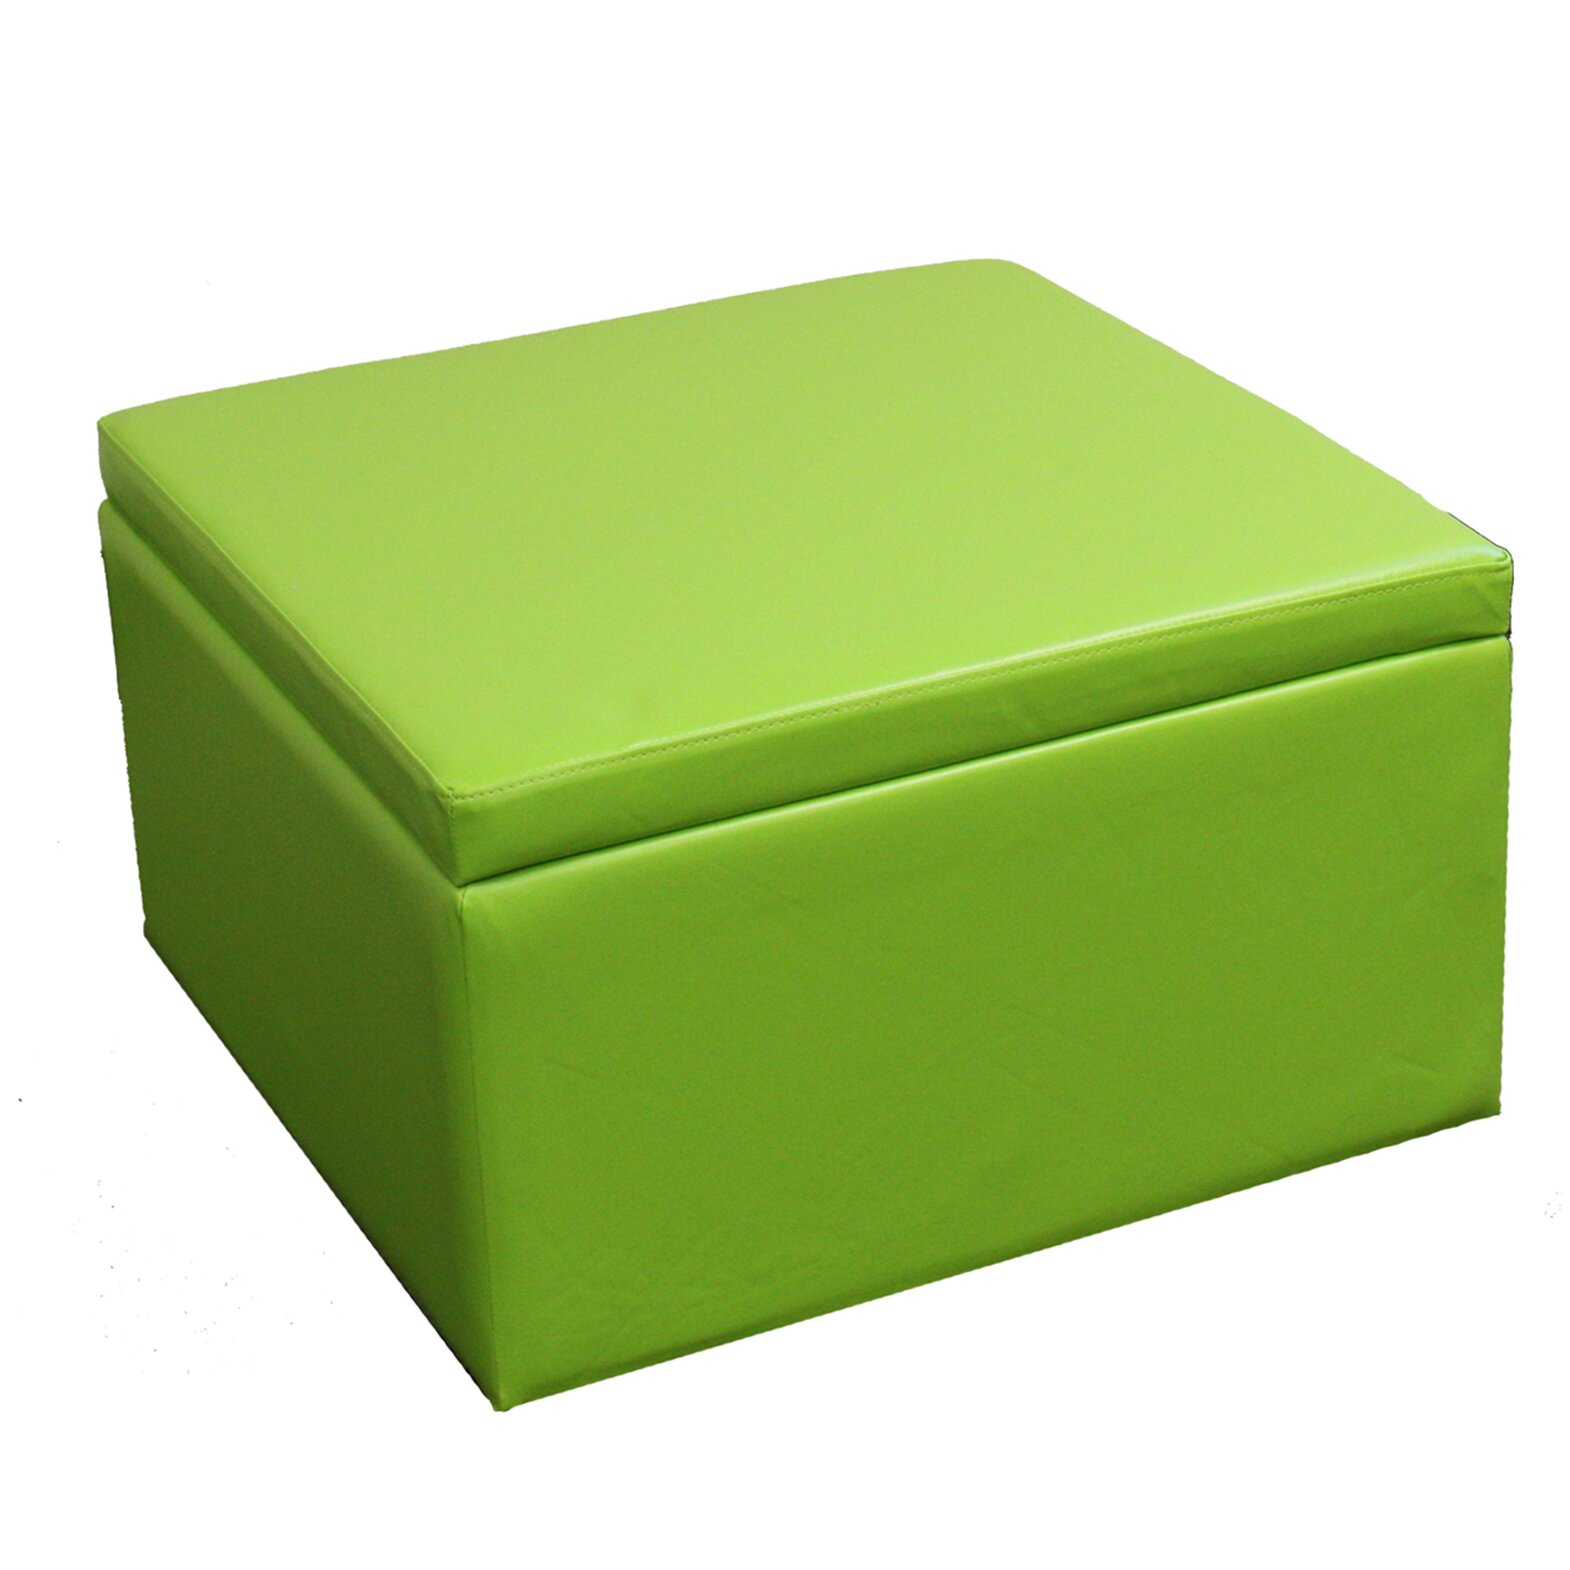 Ore furniture square storage ottoman with seating for Storage ottoman seat